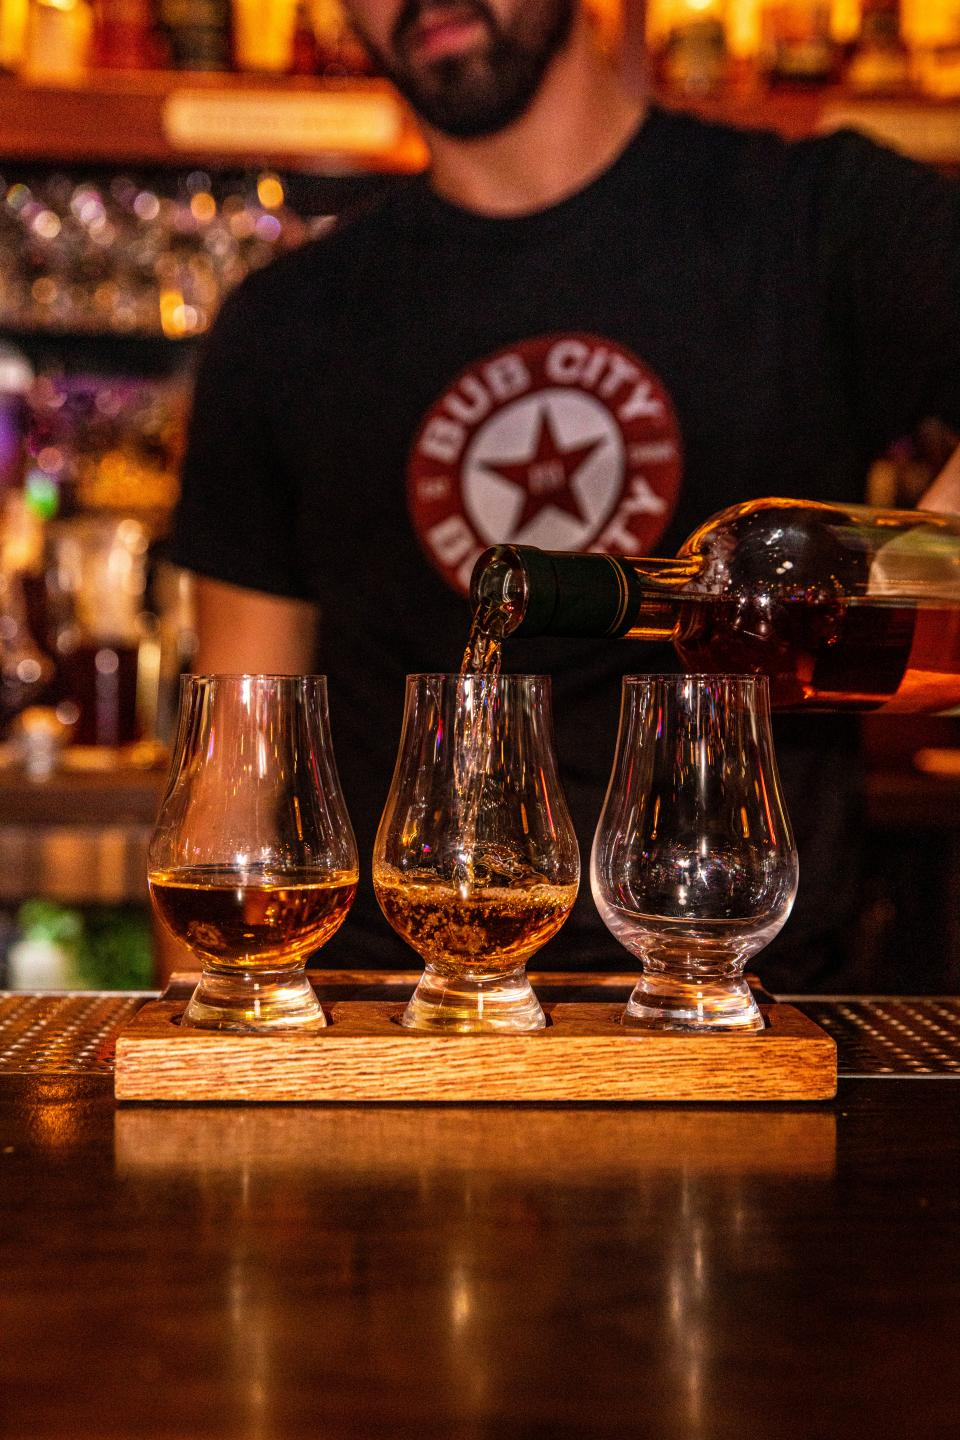 Bub City Whiskey Flight Pour